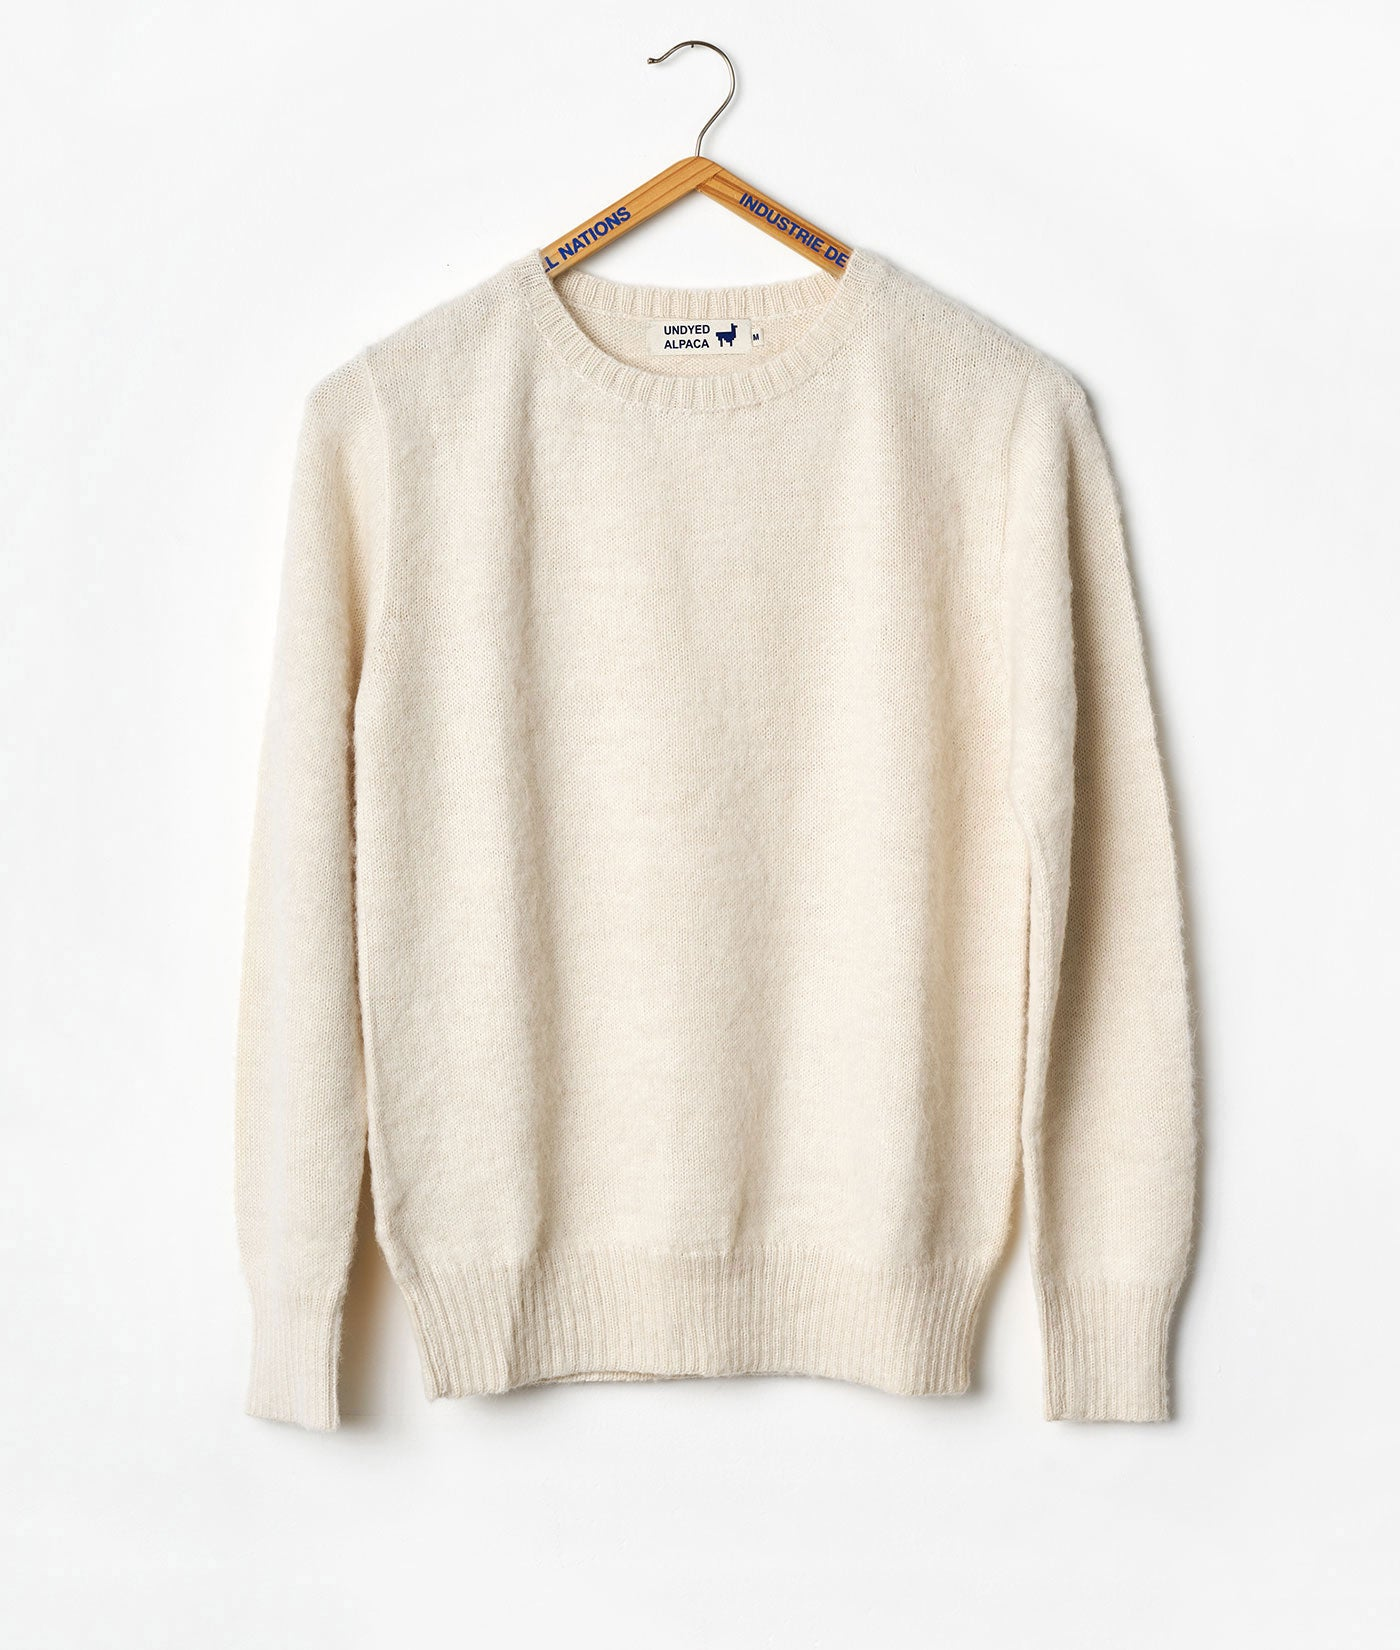 Industry of All Nations Alpaca Wool Crewneck Sweater